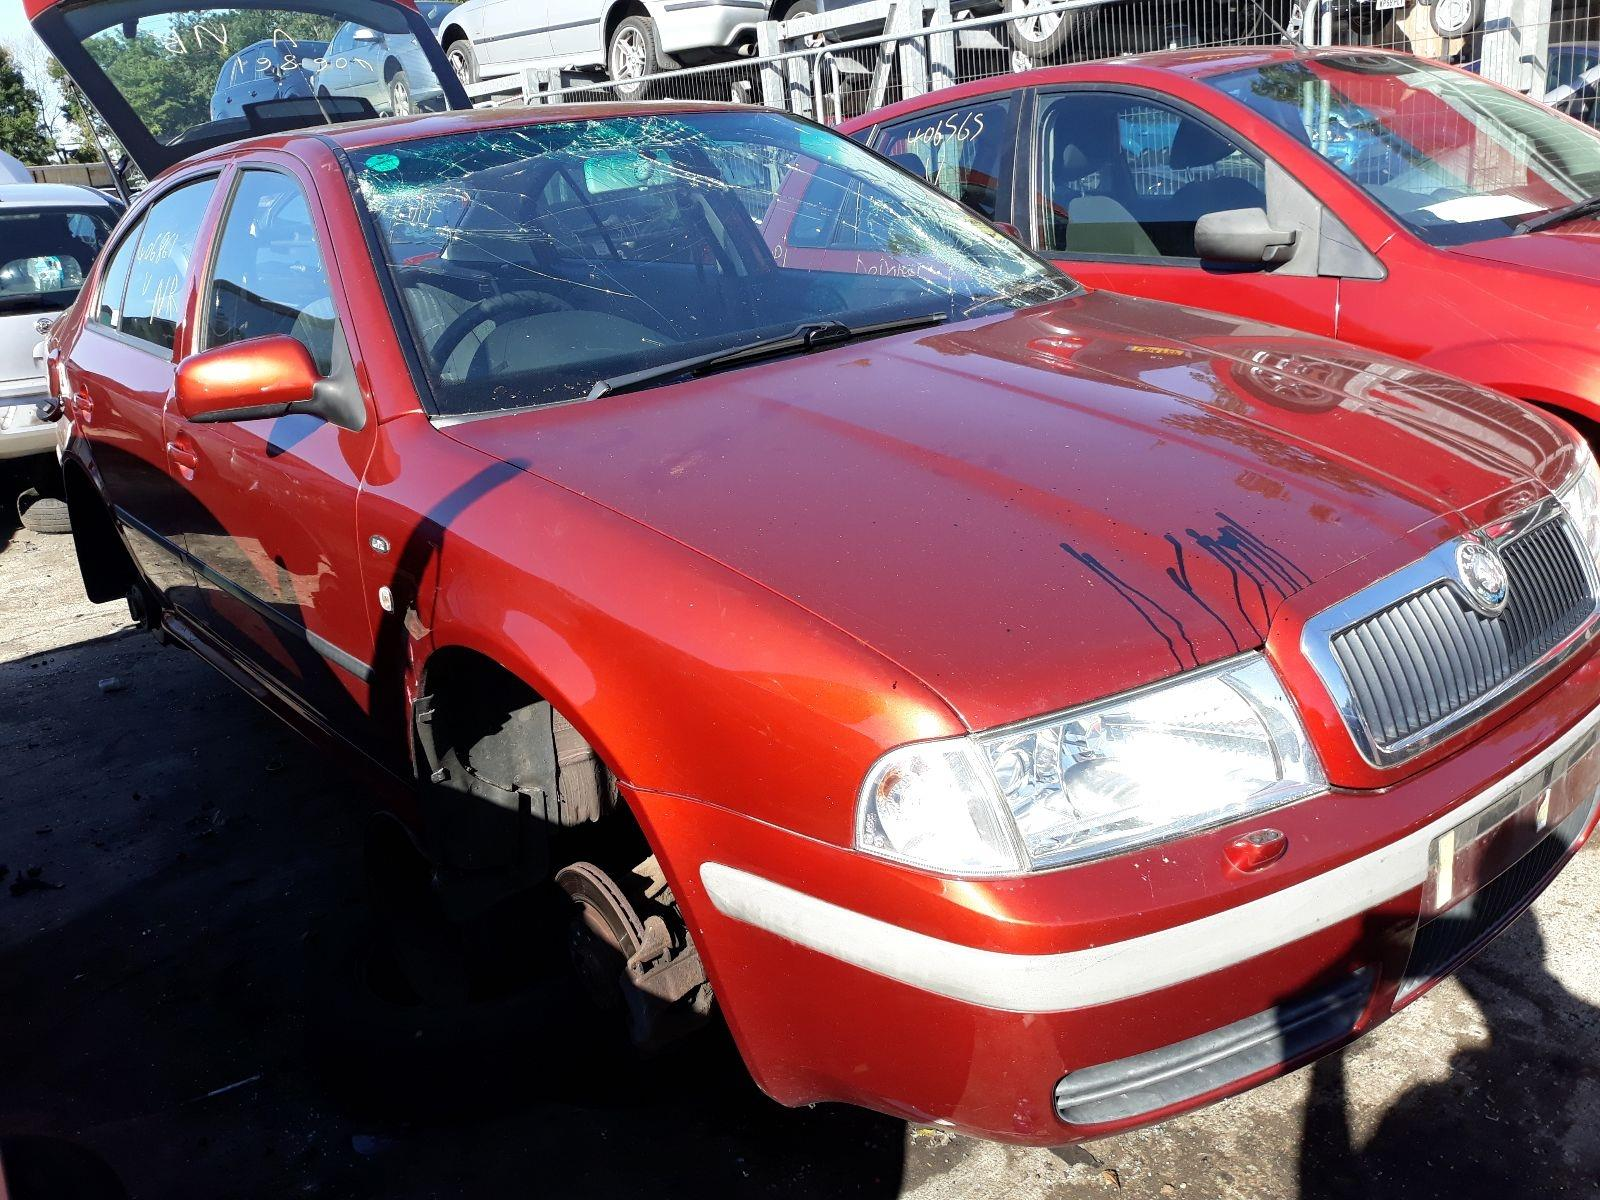 Skoda Octavia 2000 To 2005 Elegance 5 Door Hatchback Scrap Fuse Box 2006 Salvage Car For Sale Auction Silverlake Autoparts